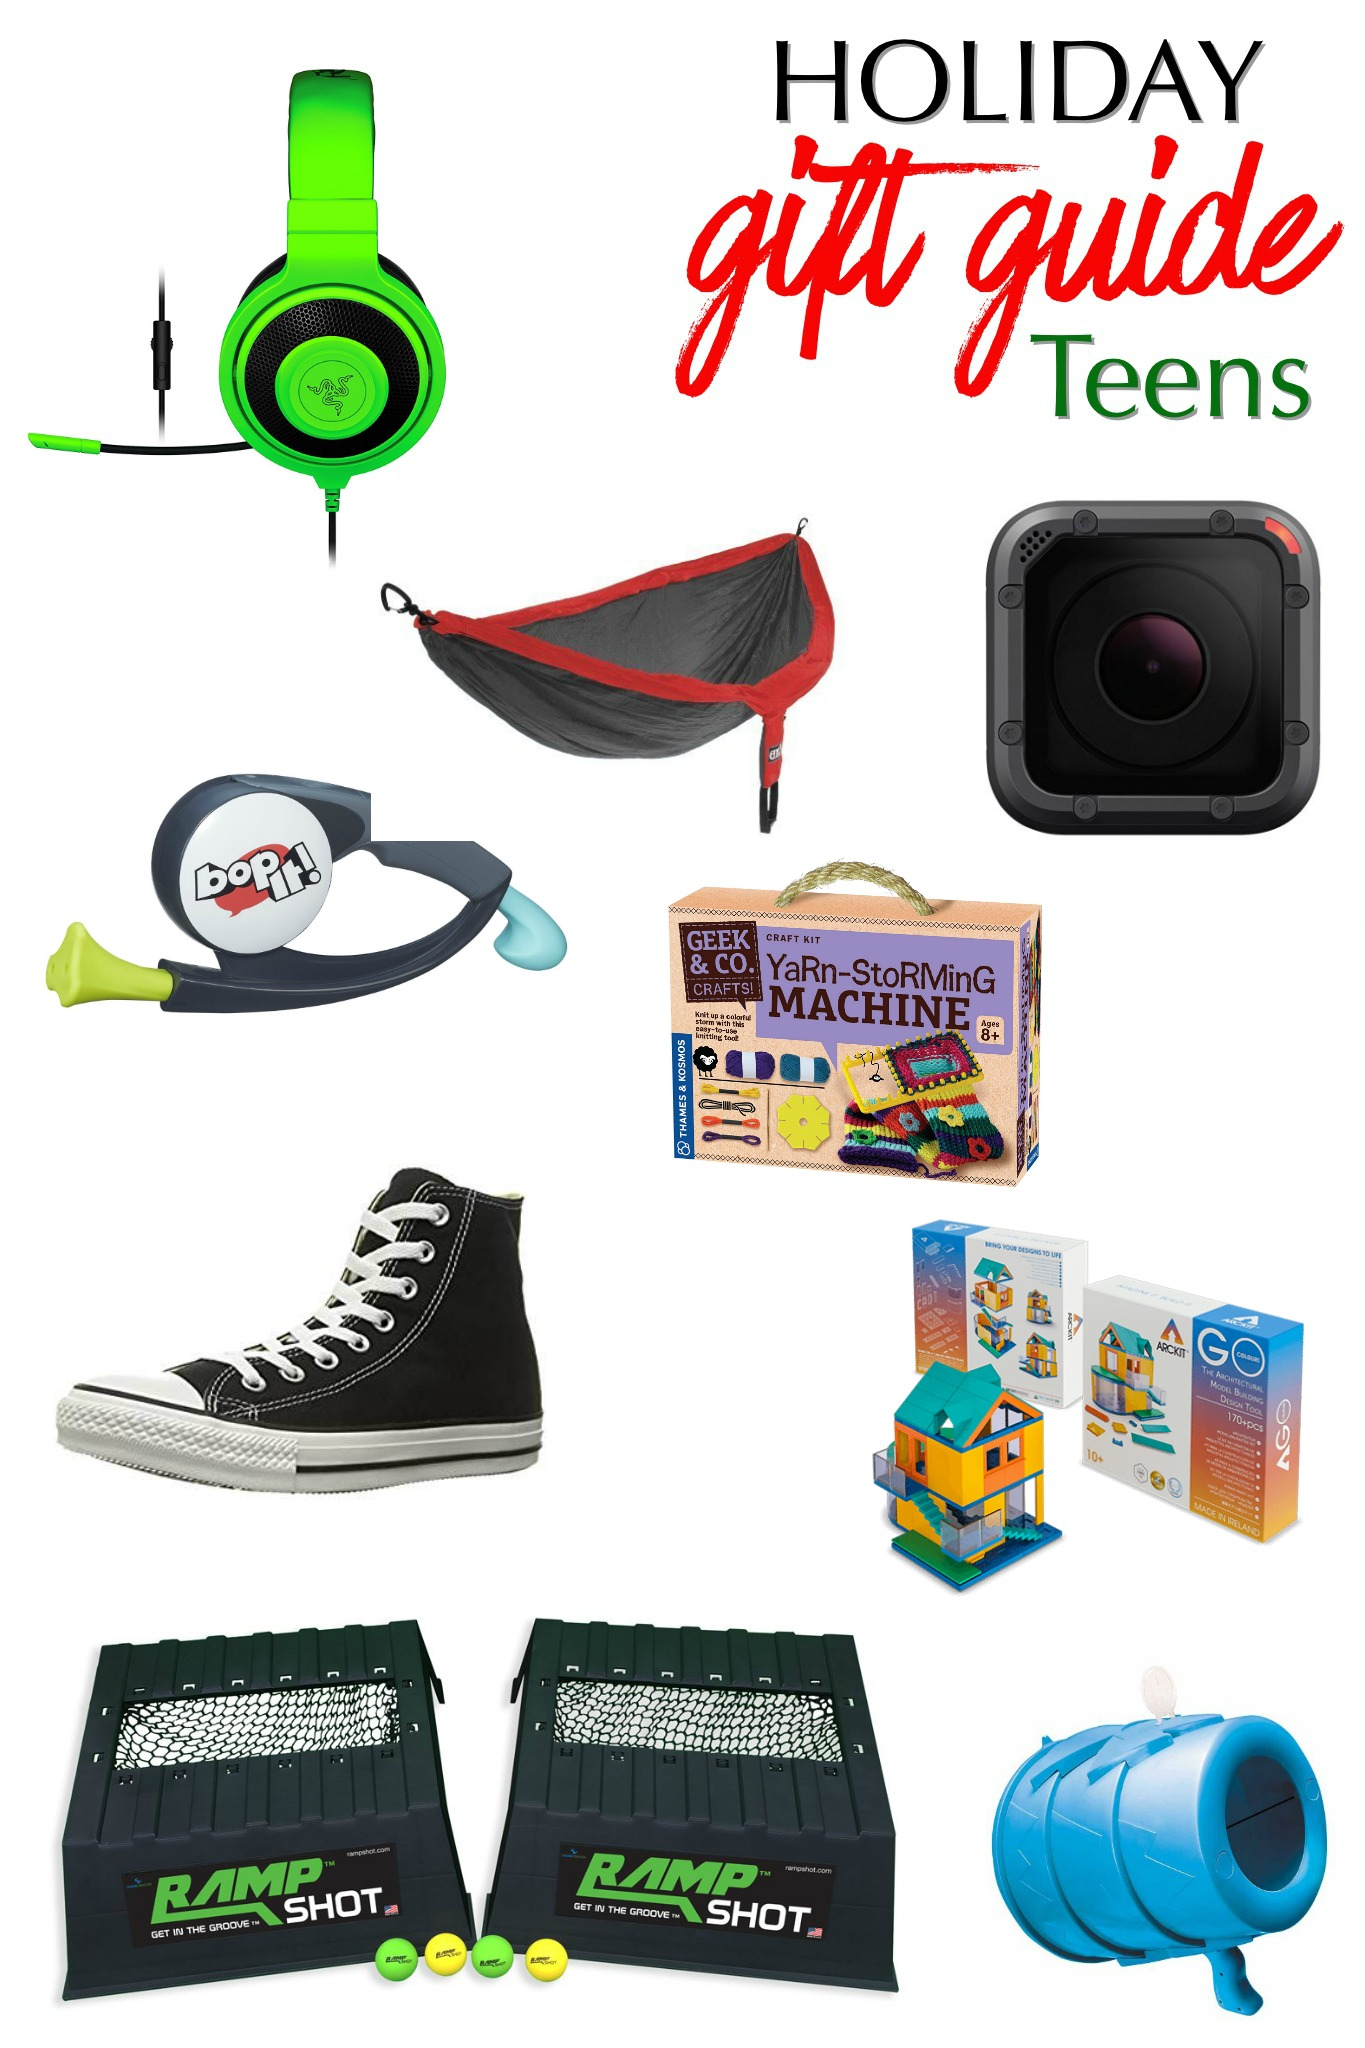 Holiday Gift Guide for Teens: What Teens Really Want for Christmas